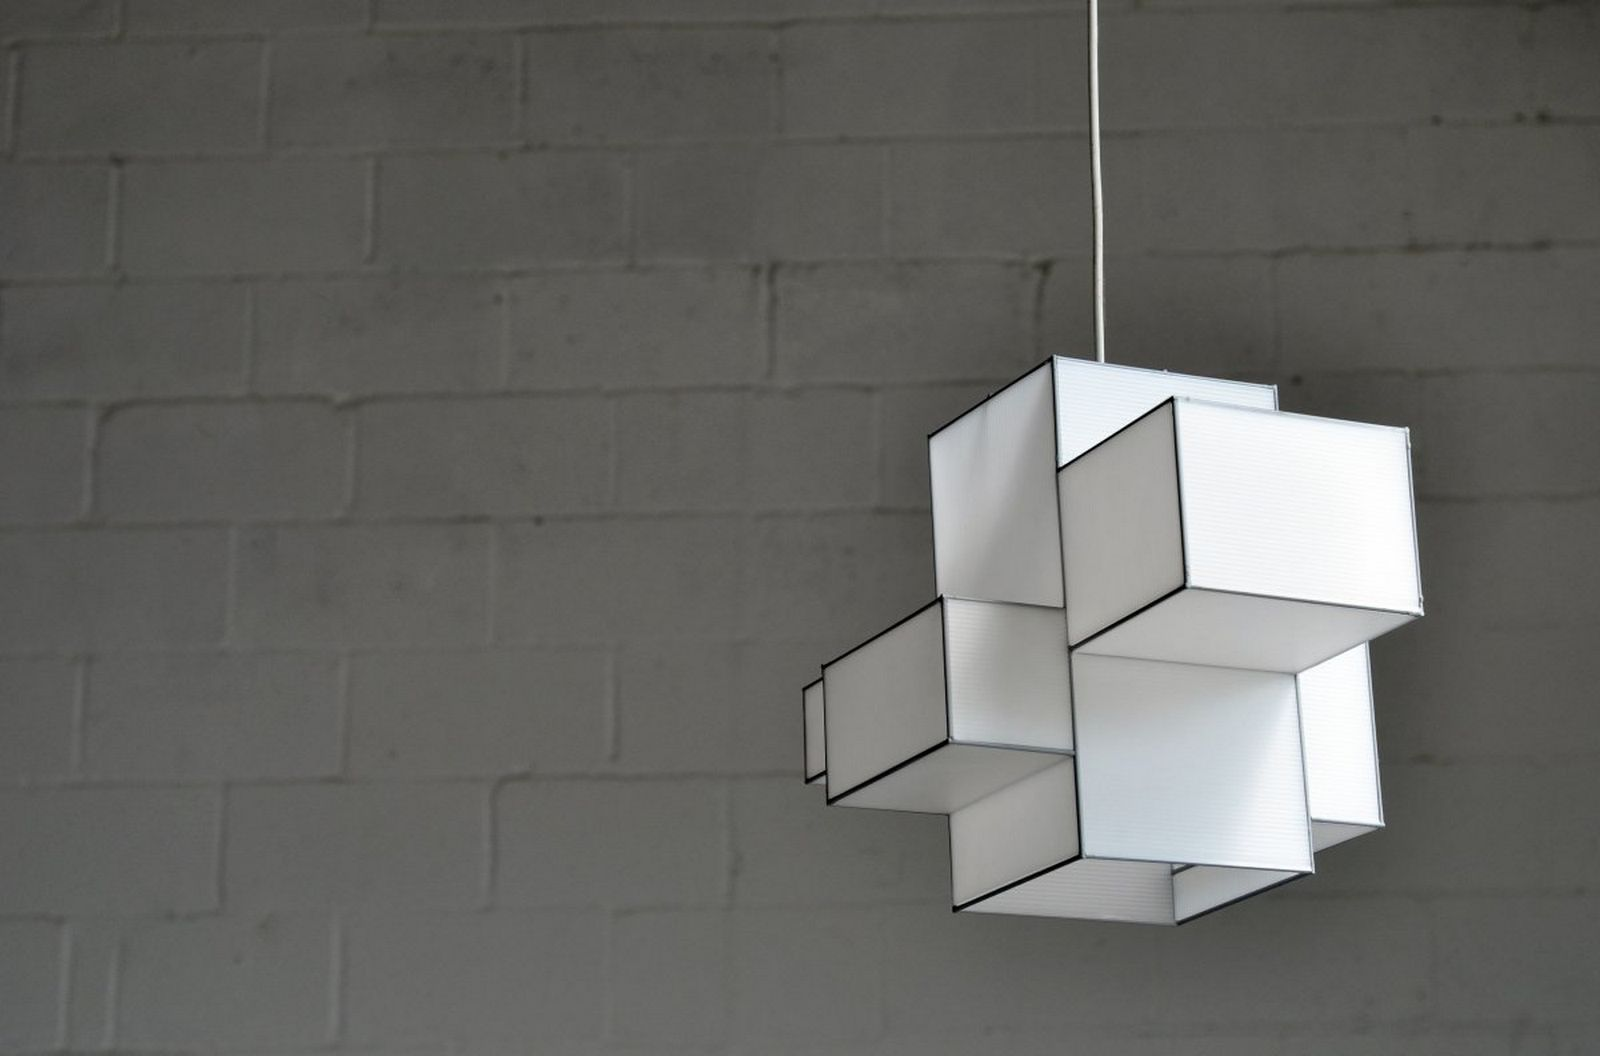 Modern Bedroom Lamp Minimalist Lamp Google Search Structural Shapes Minimalism